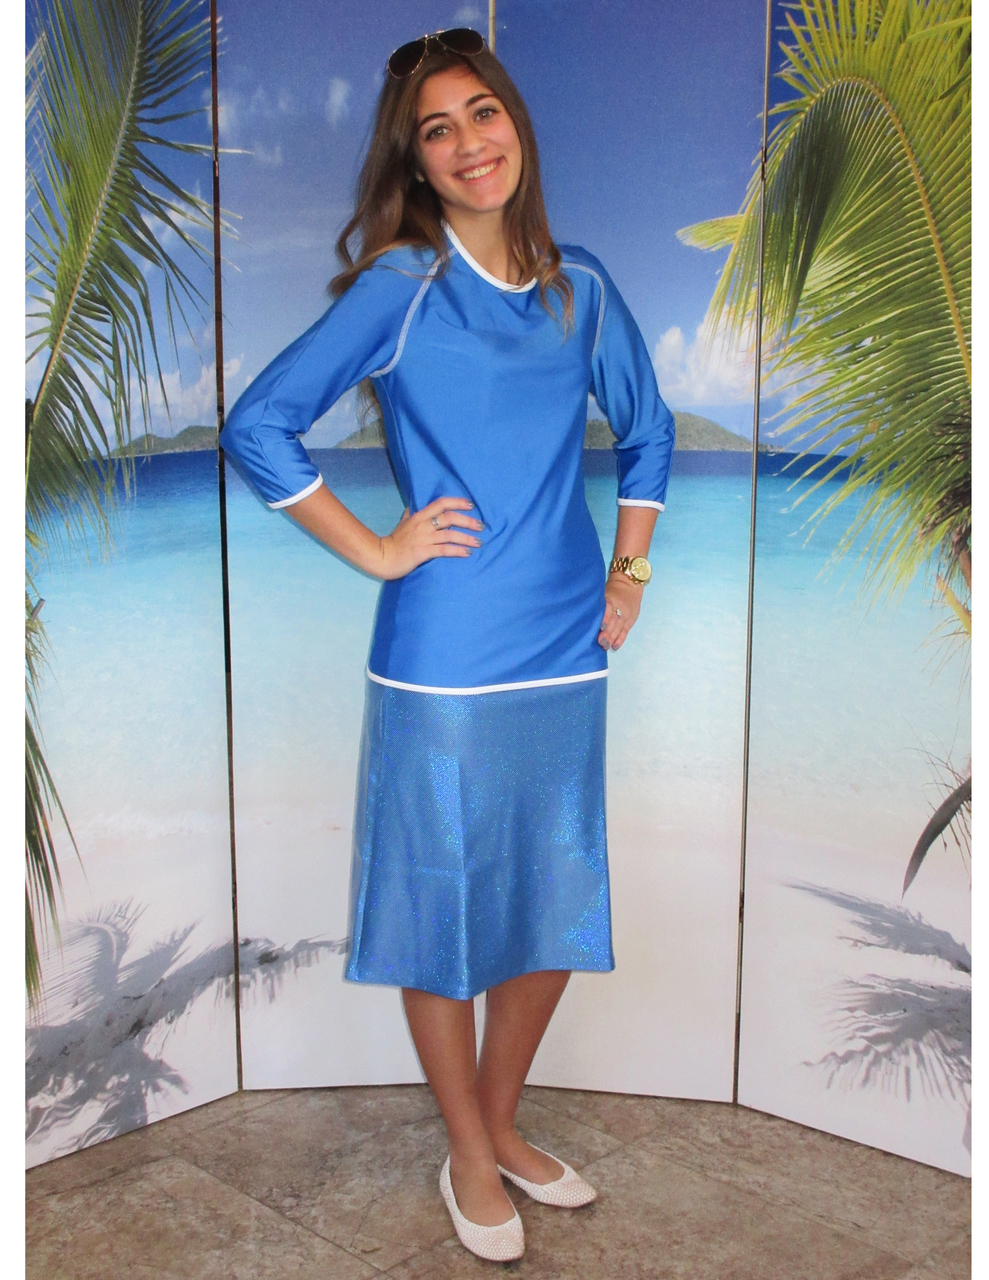 model-wearing-style-2629-in-sailing-blue-with-sparkle-blue-skirt-07194.1447440673.1280.1280.jpg